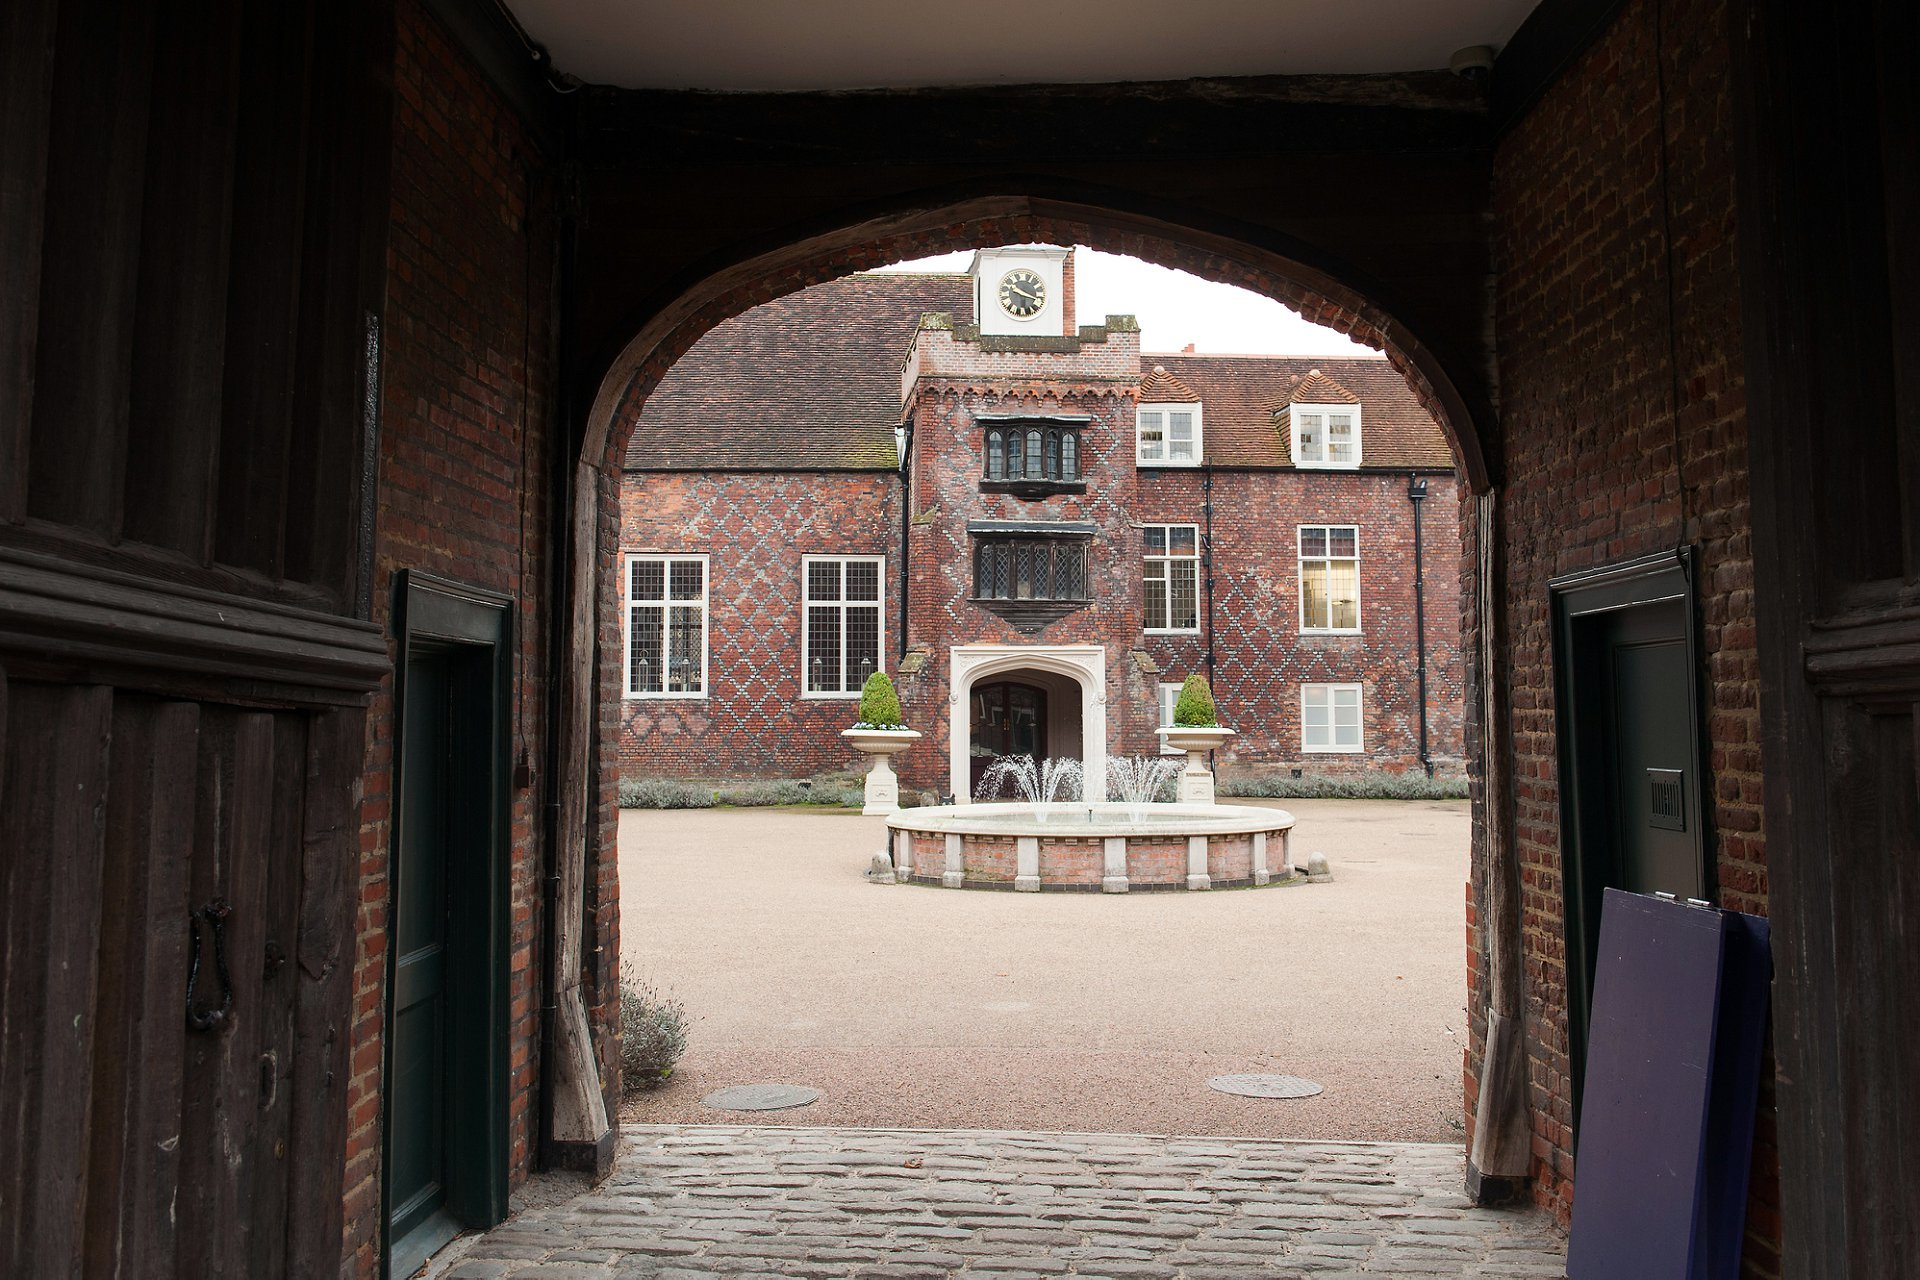 Historic Fulham Palace in west London looking through the wooden entrance gate and into the courtyard with the clock tower and fountain visible